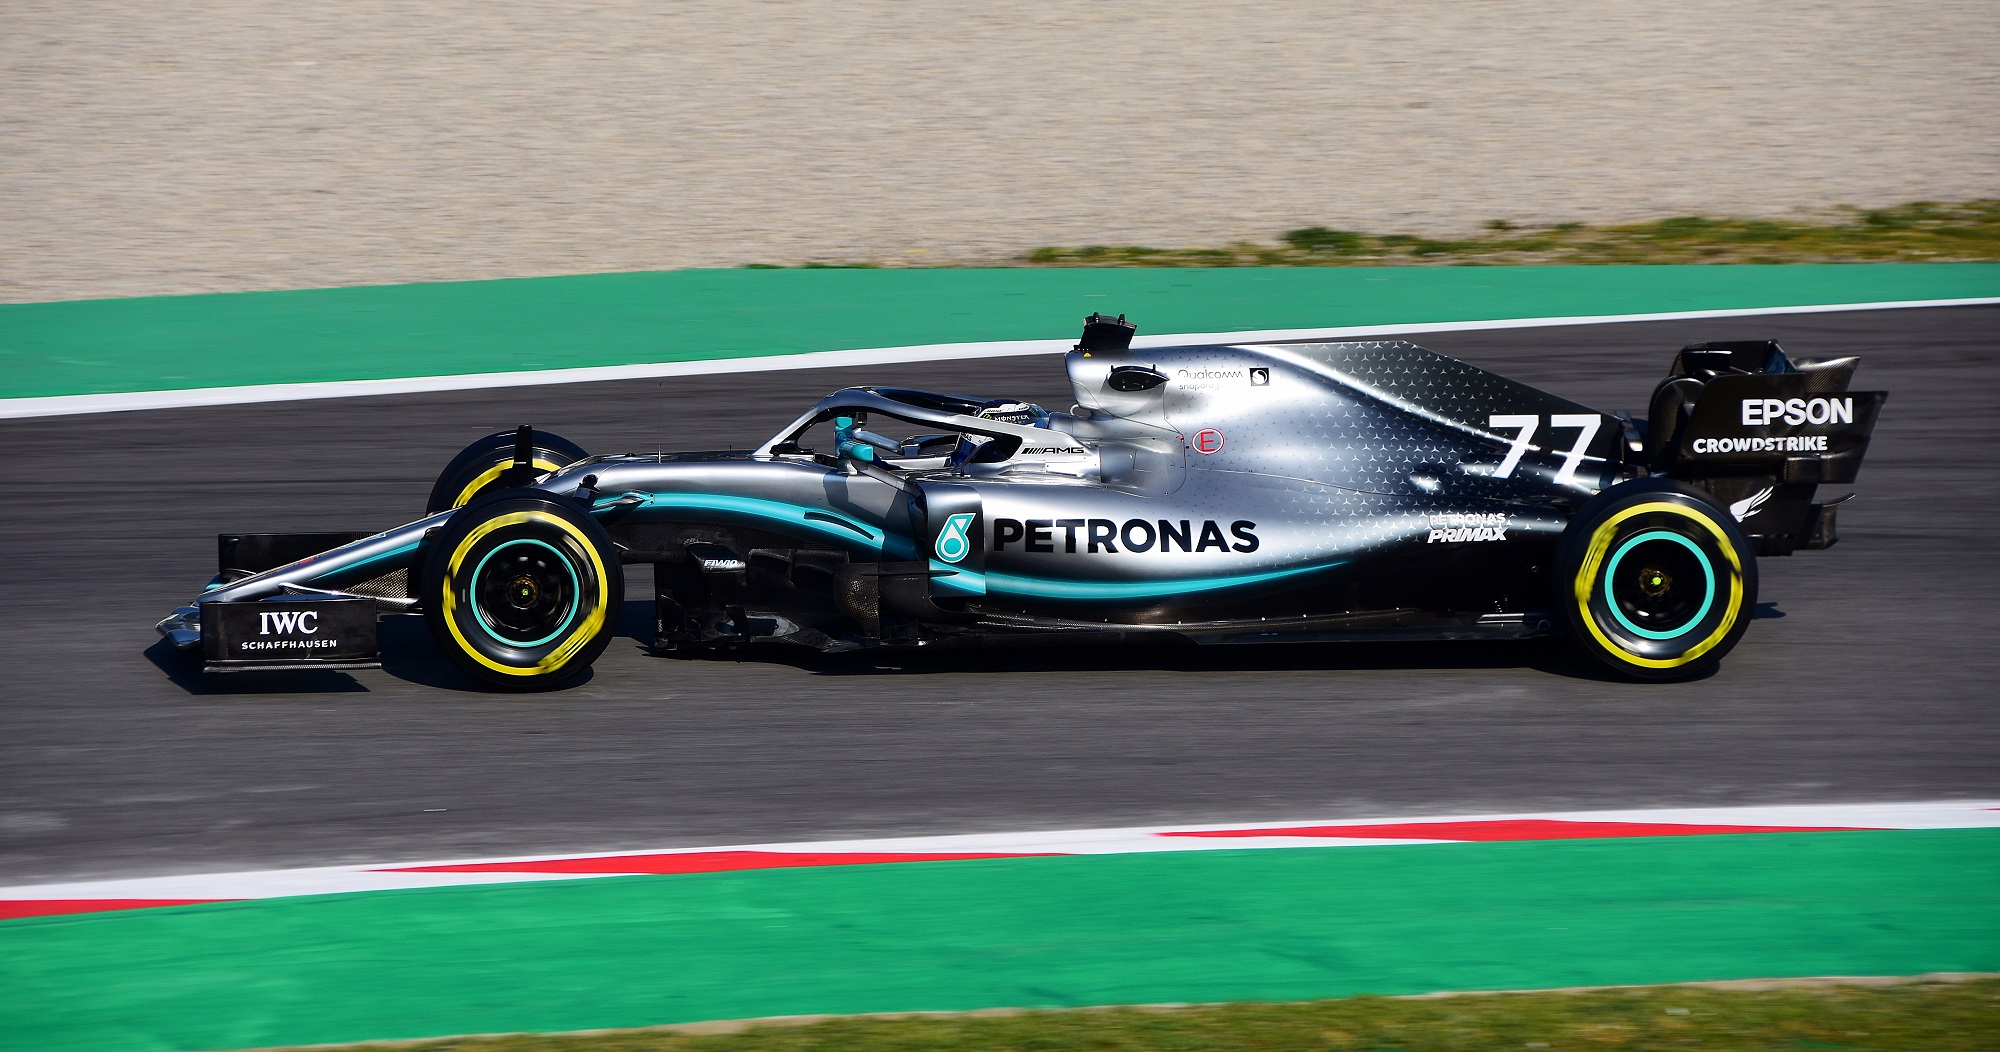 2019_Formula_One_Test_Days_-_Valtteri_Bottas_Mercedes_F1_W10.jpg